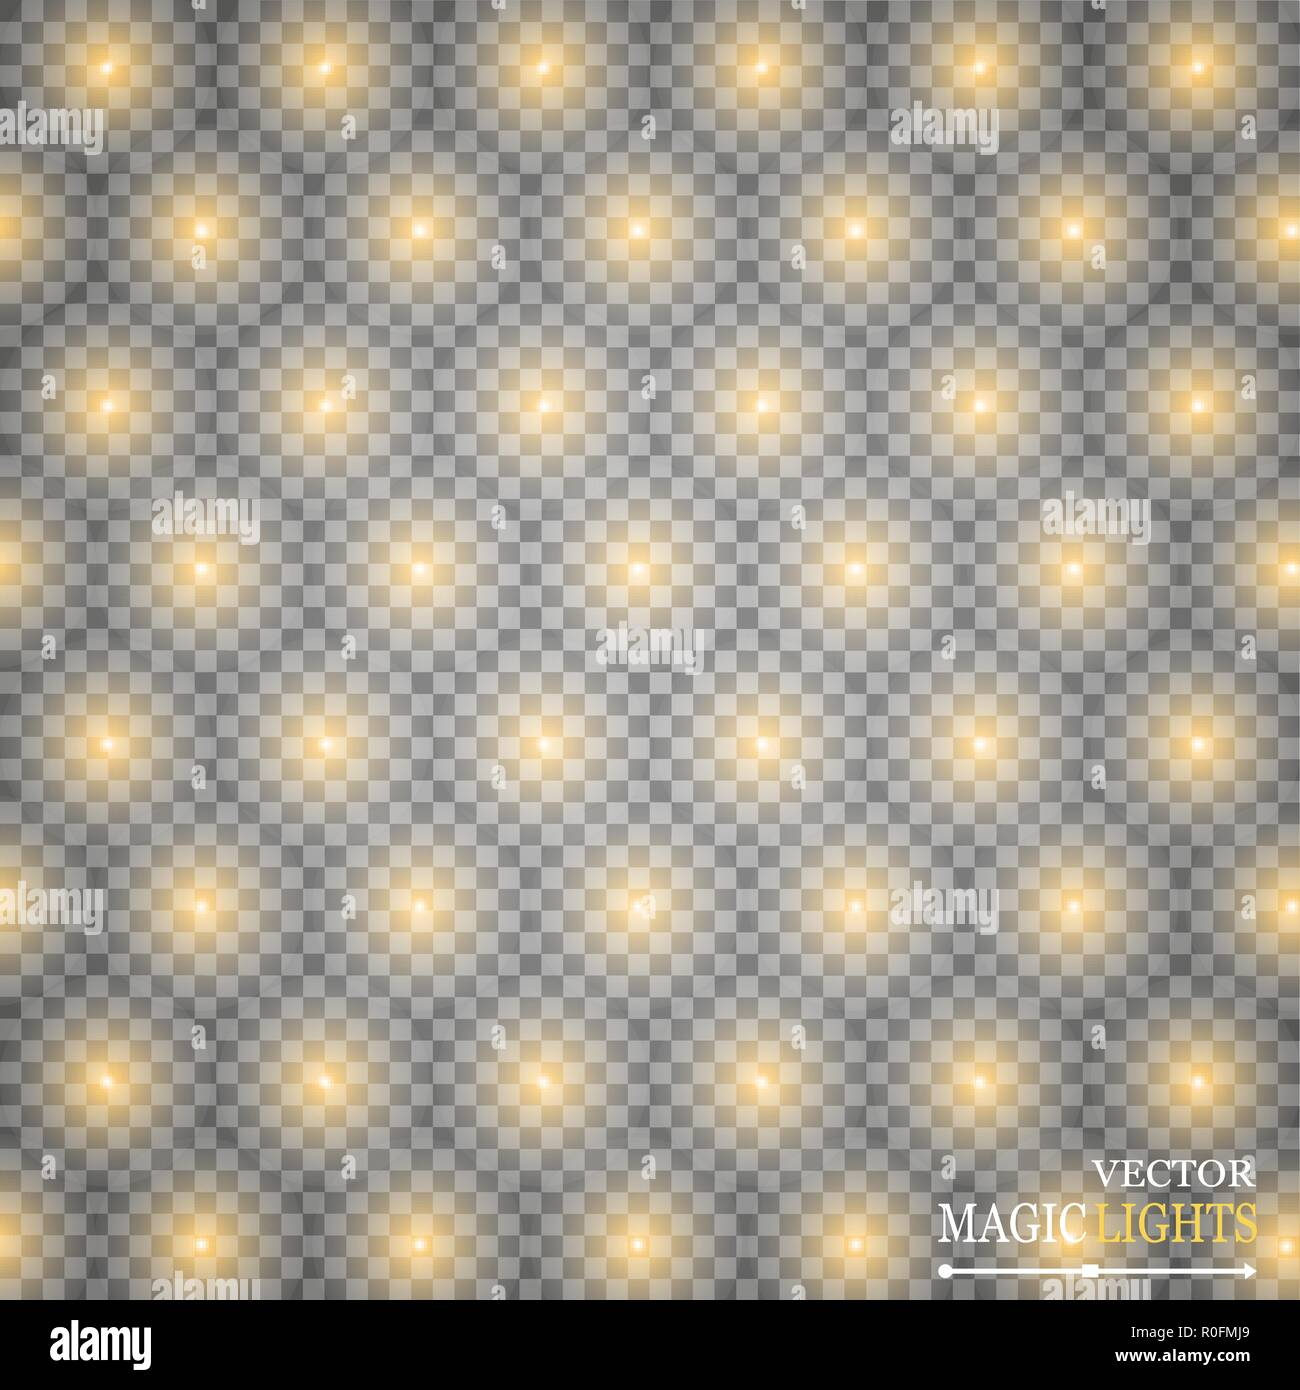 Halftone pattern vector.blue the circles to the background squares. - Stock Image